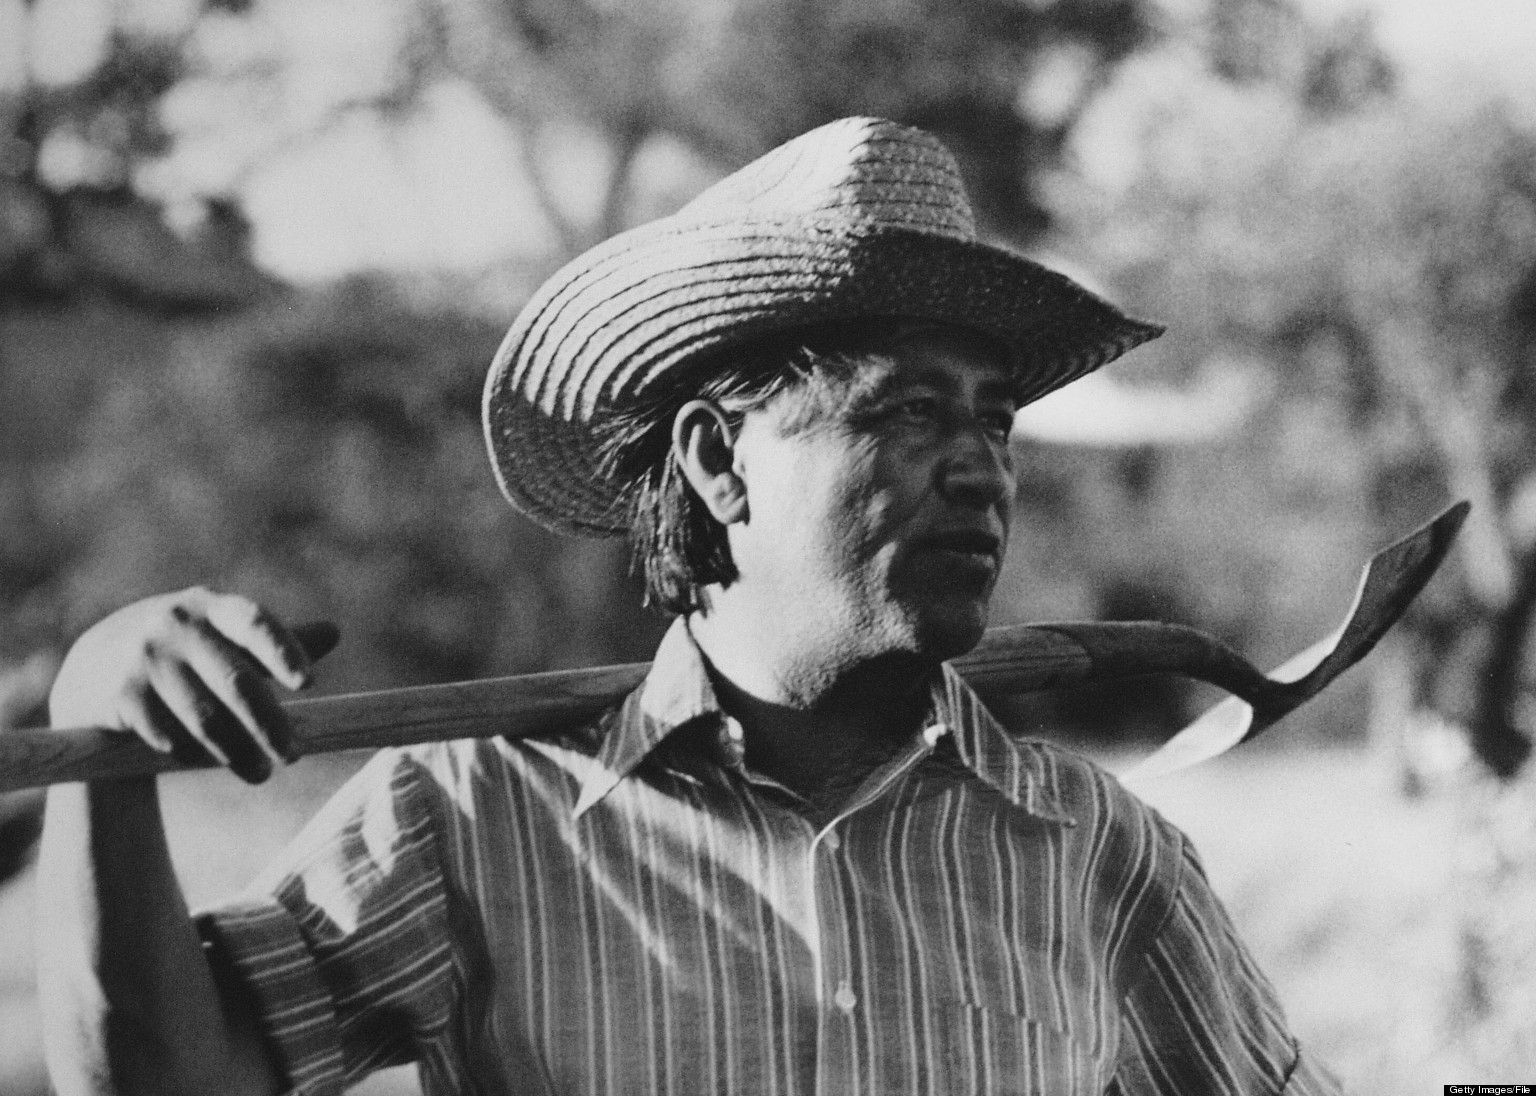 cesar chavez used terms wetbacks illegals to describe cesar chavez used terms wetbacks illegals to describe immigrants huffpost